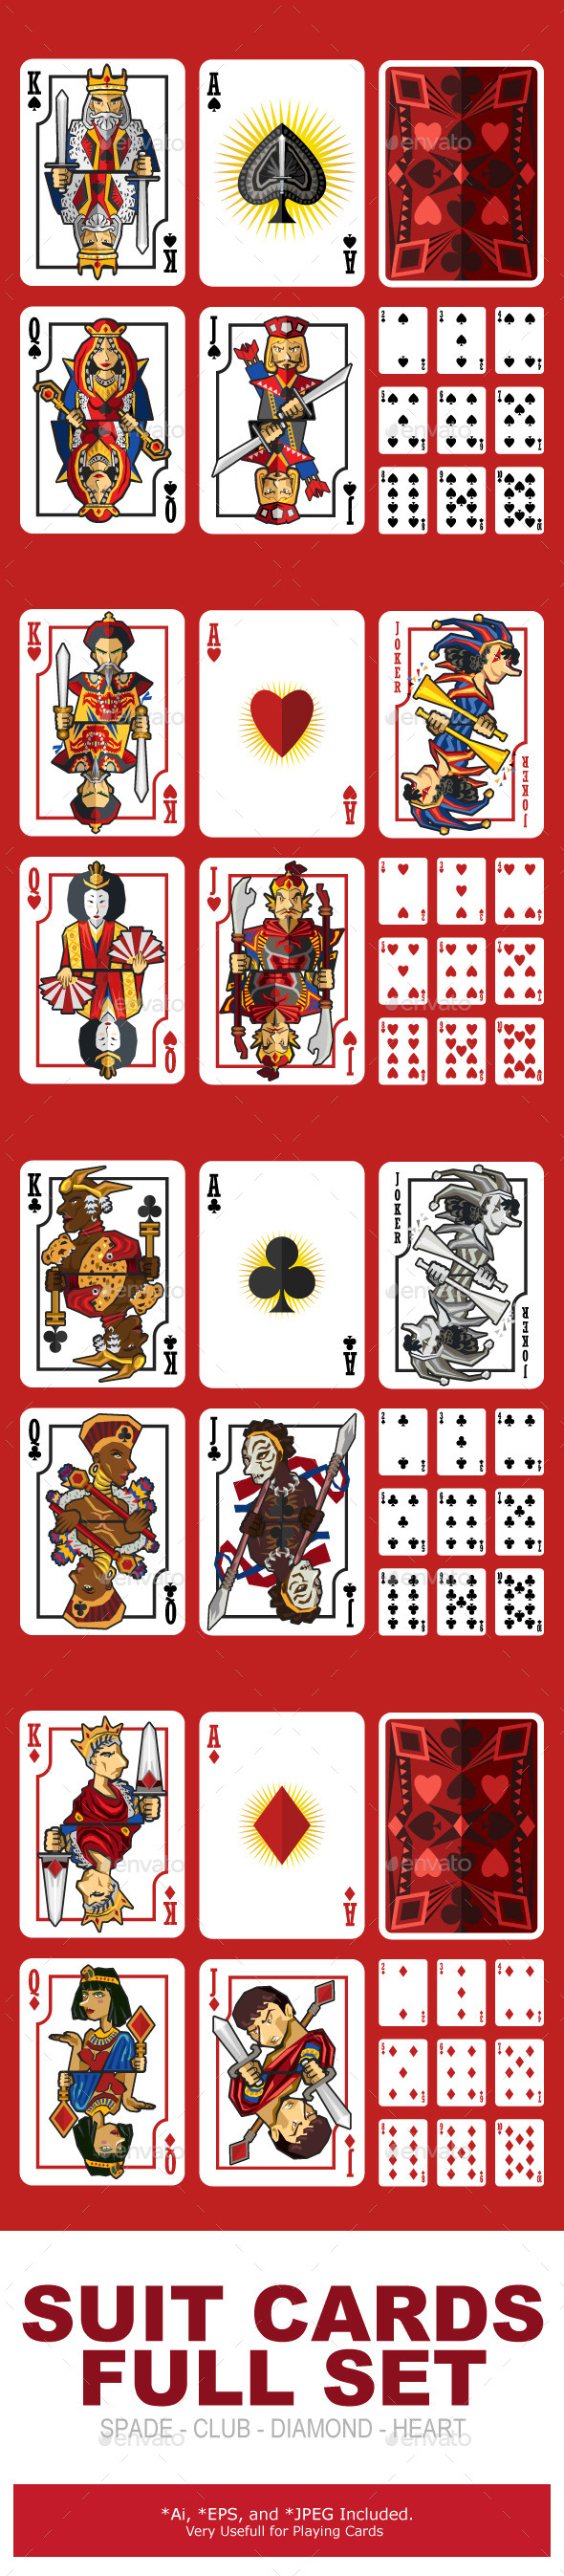 Suit Playing Cards Full Set